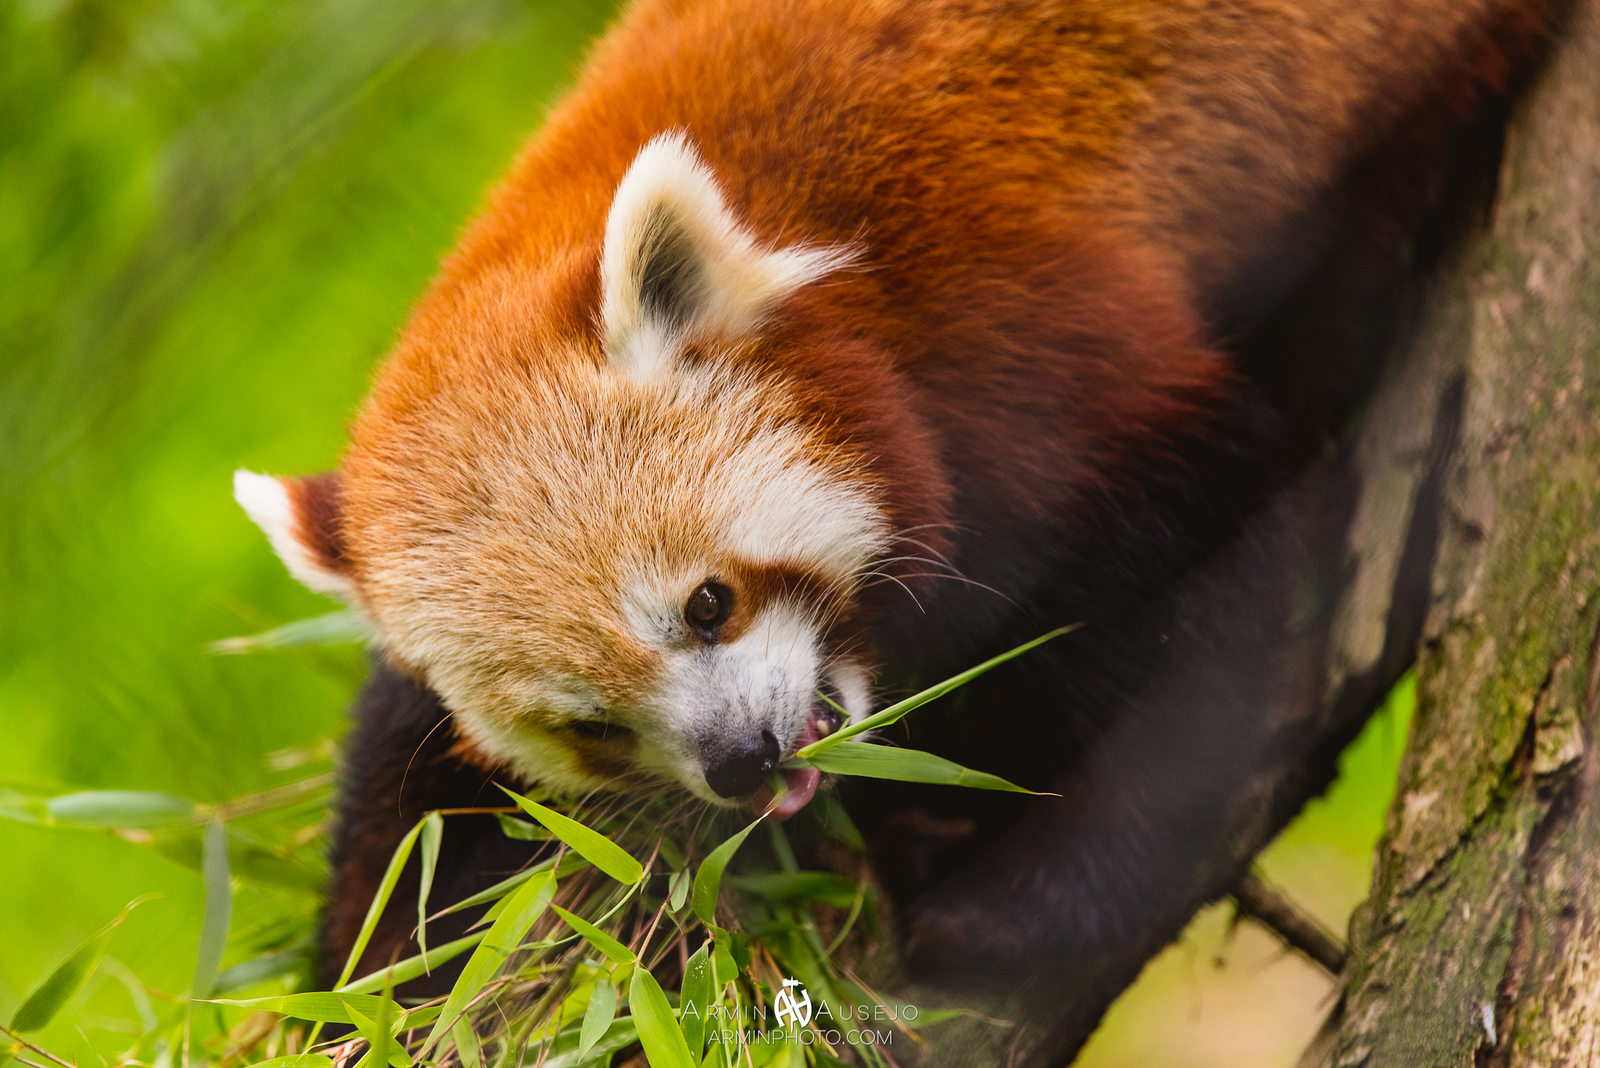 Carson the Red Panda with the Nikkor 300mm f/4E PF ED VR